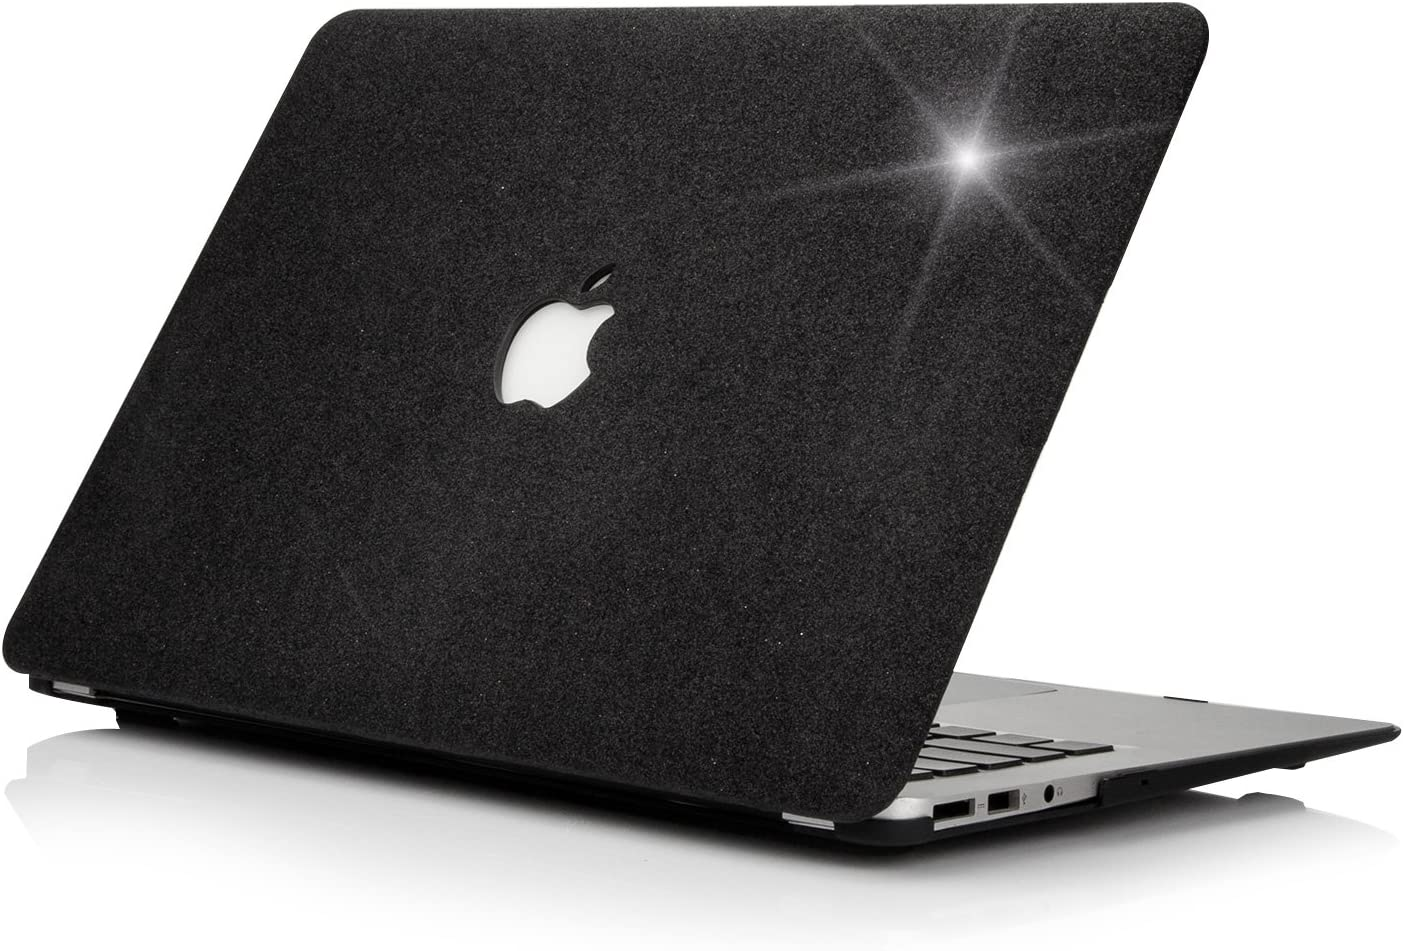 "Funut MacBook Air 13 Inch Leather Case, Shiny Hard Plastic Case Shell Slim Smooth Touch Air 13 Protective Case Cover for (2010-2017 Older Ver.) Mac Air 13.3"" (A1466 & A1369), Shiny Black"